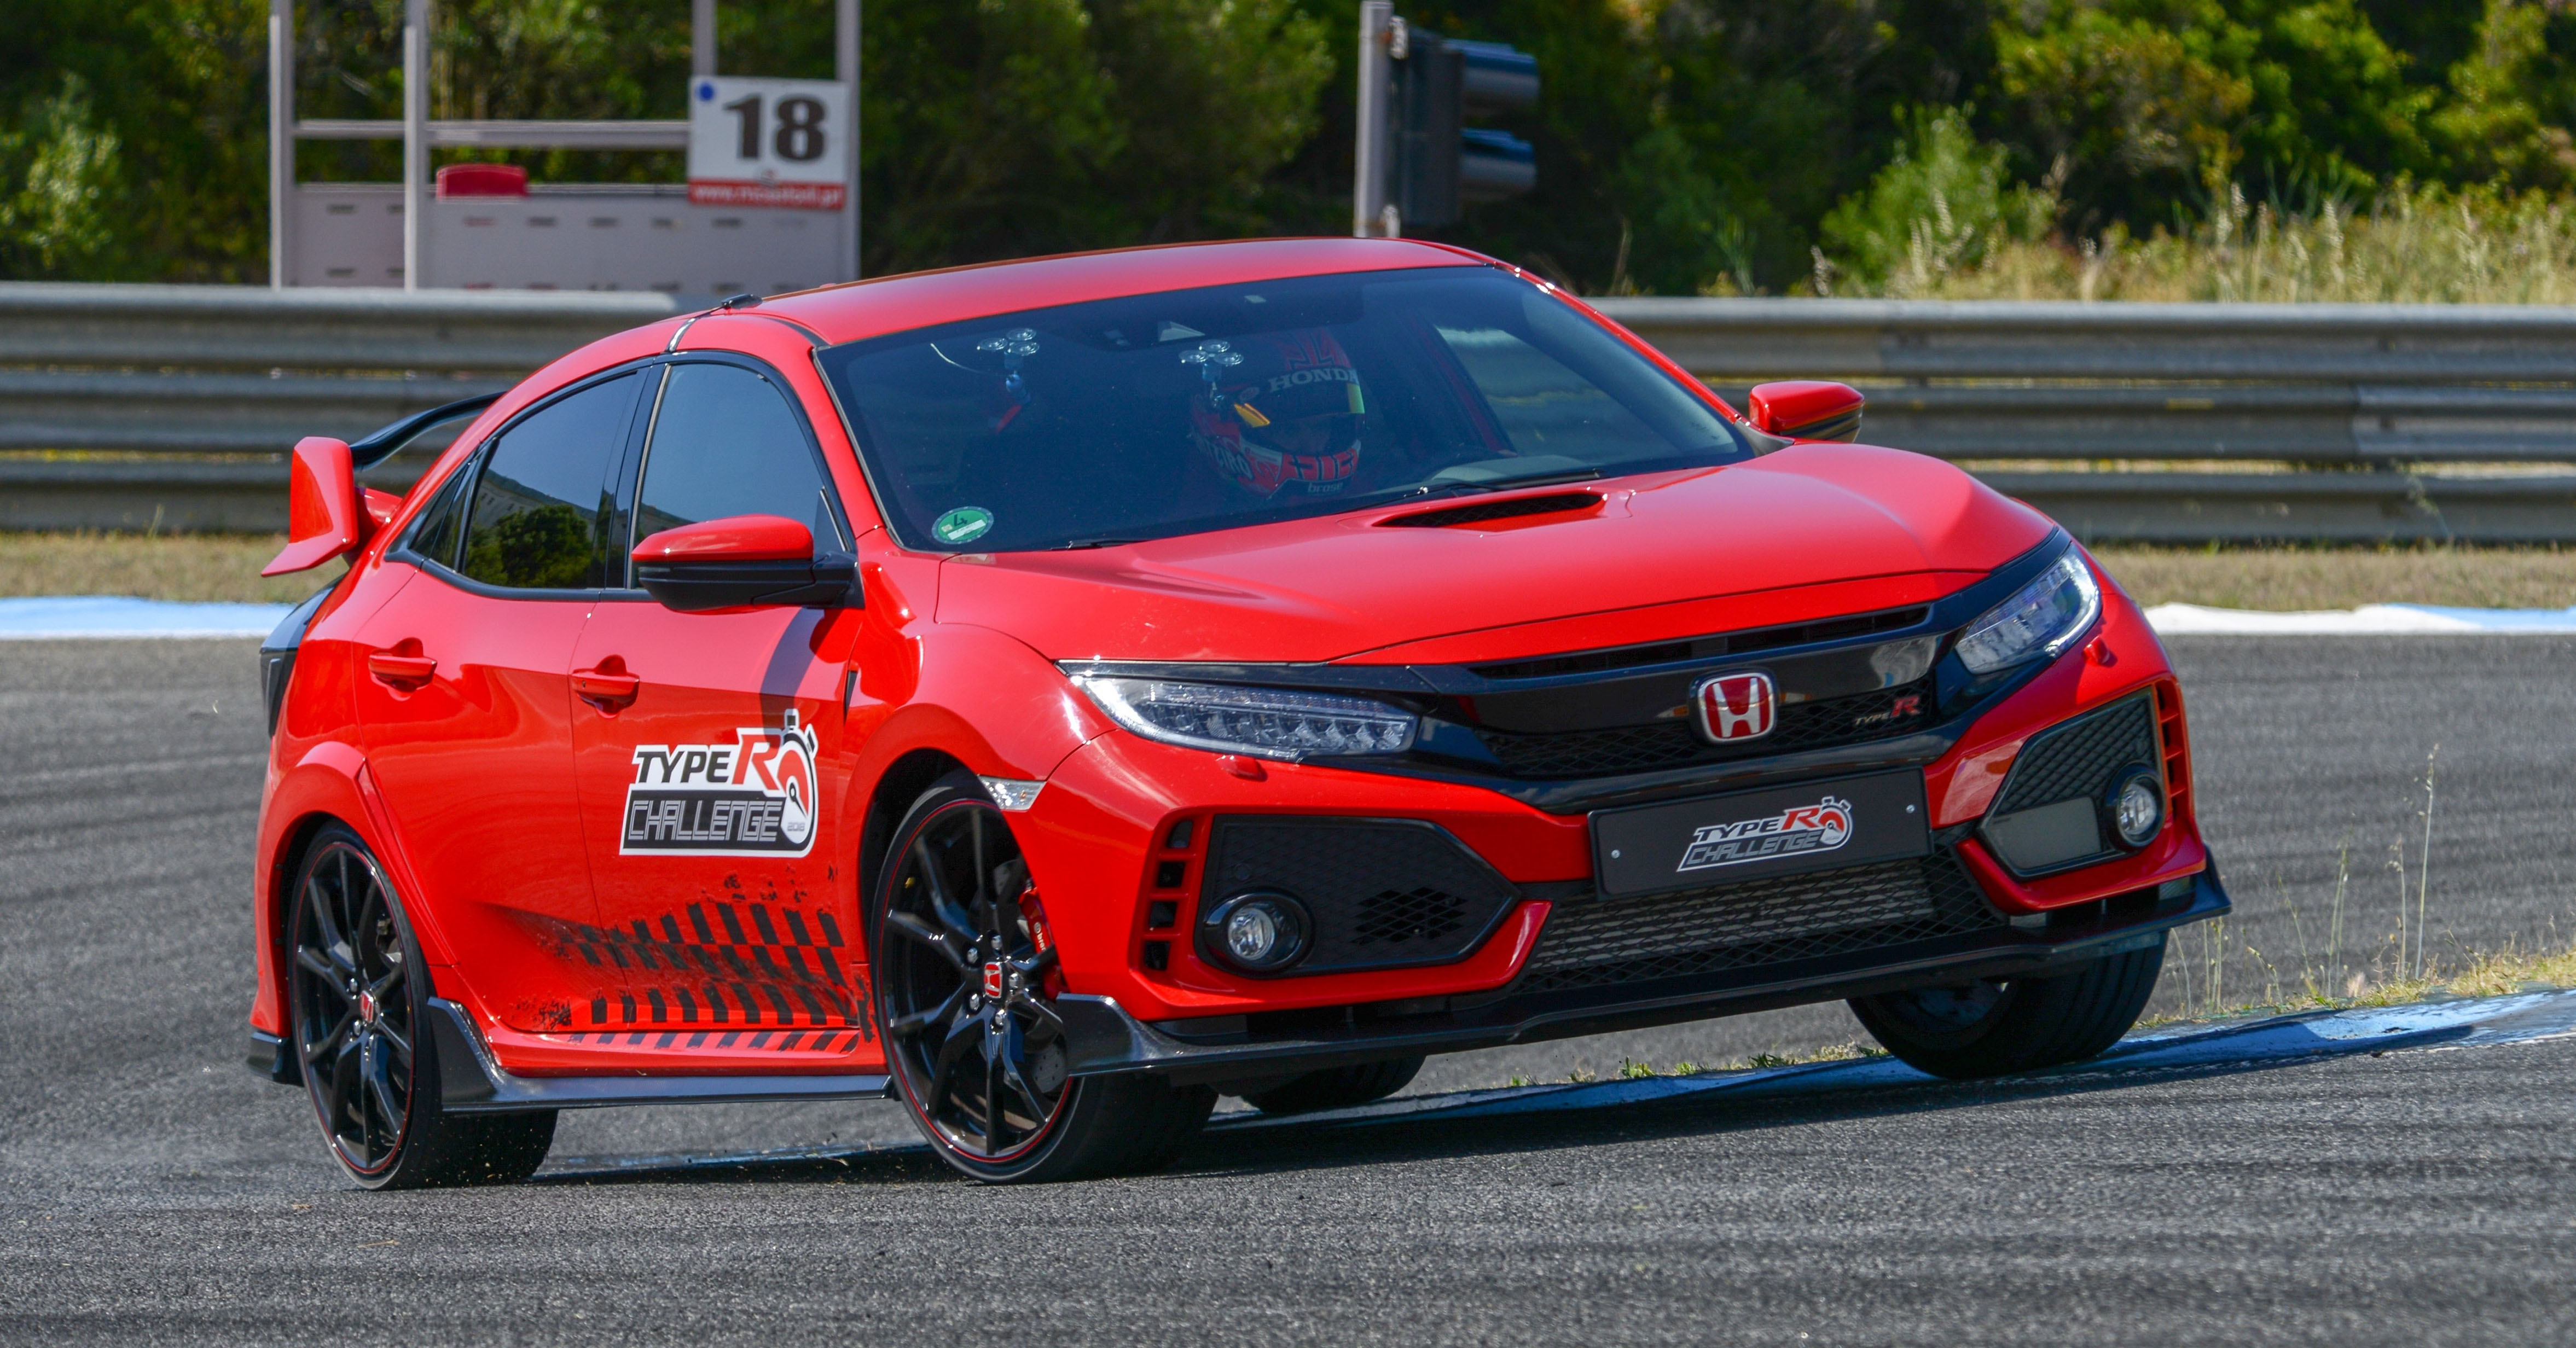 Honda Civic Type R sets new lap record at Estoril circuit in Portugal, driven by Tiago Monteiro